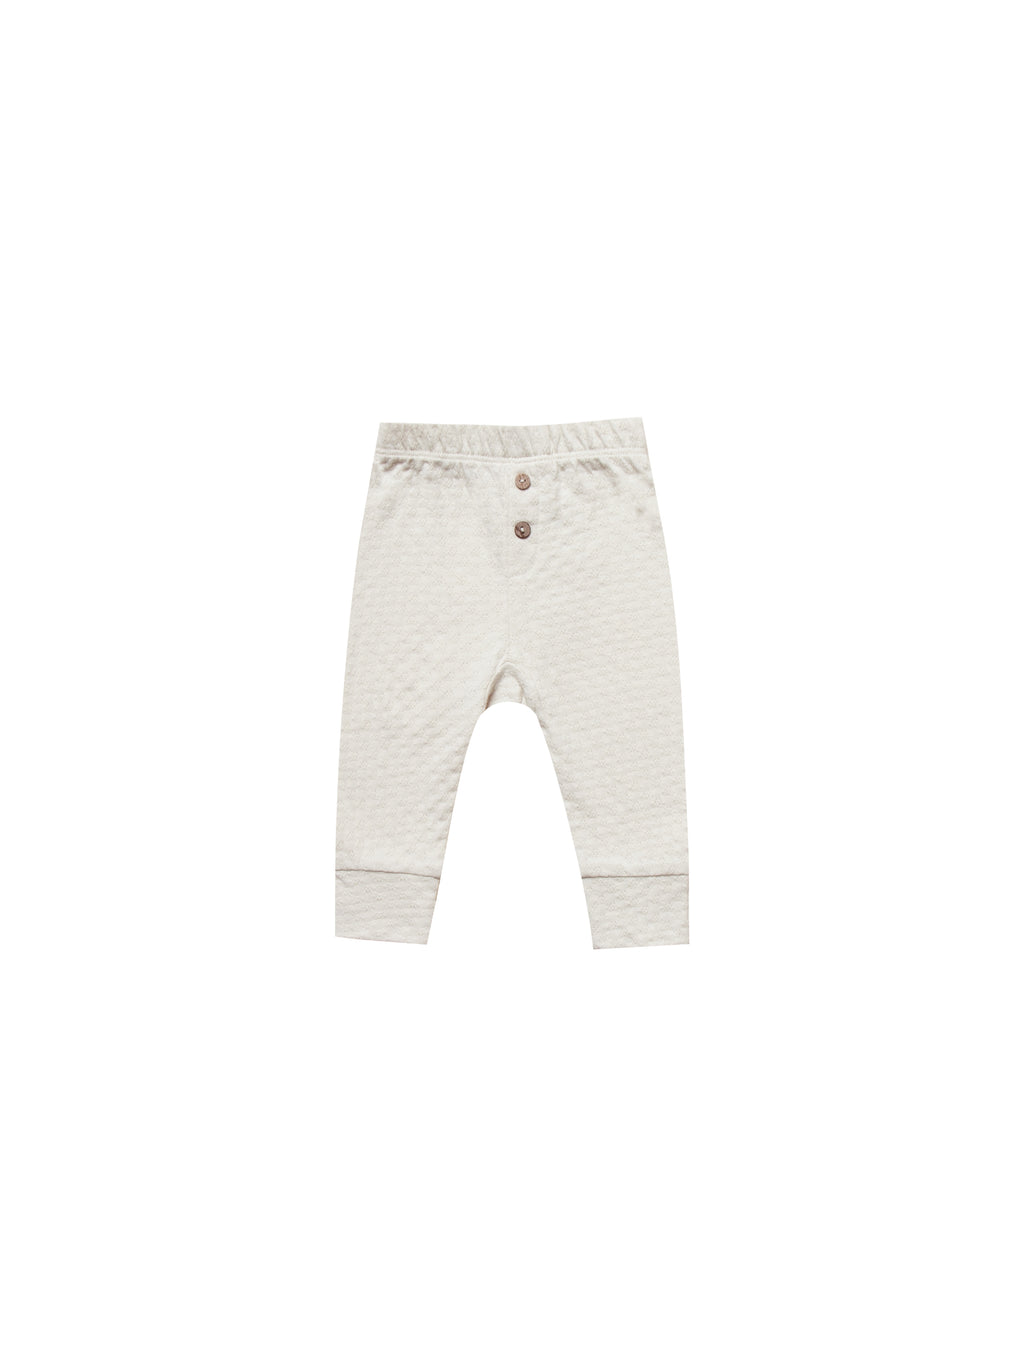 Quincy Mae Pointelle Pant - Pebble